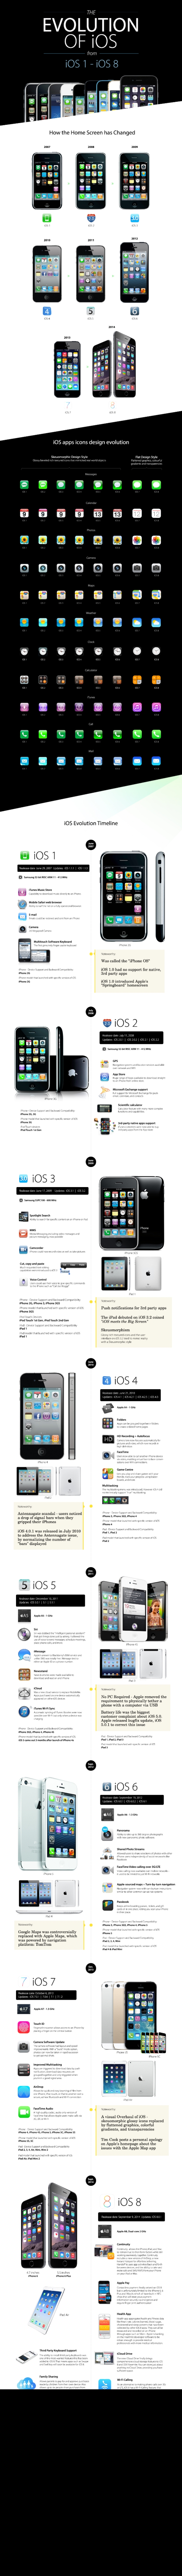 iphone-6-ios-8-infographic-full